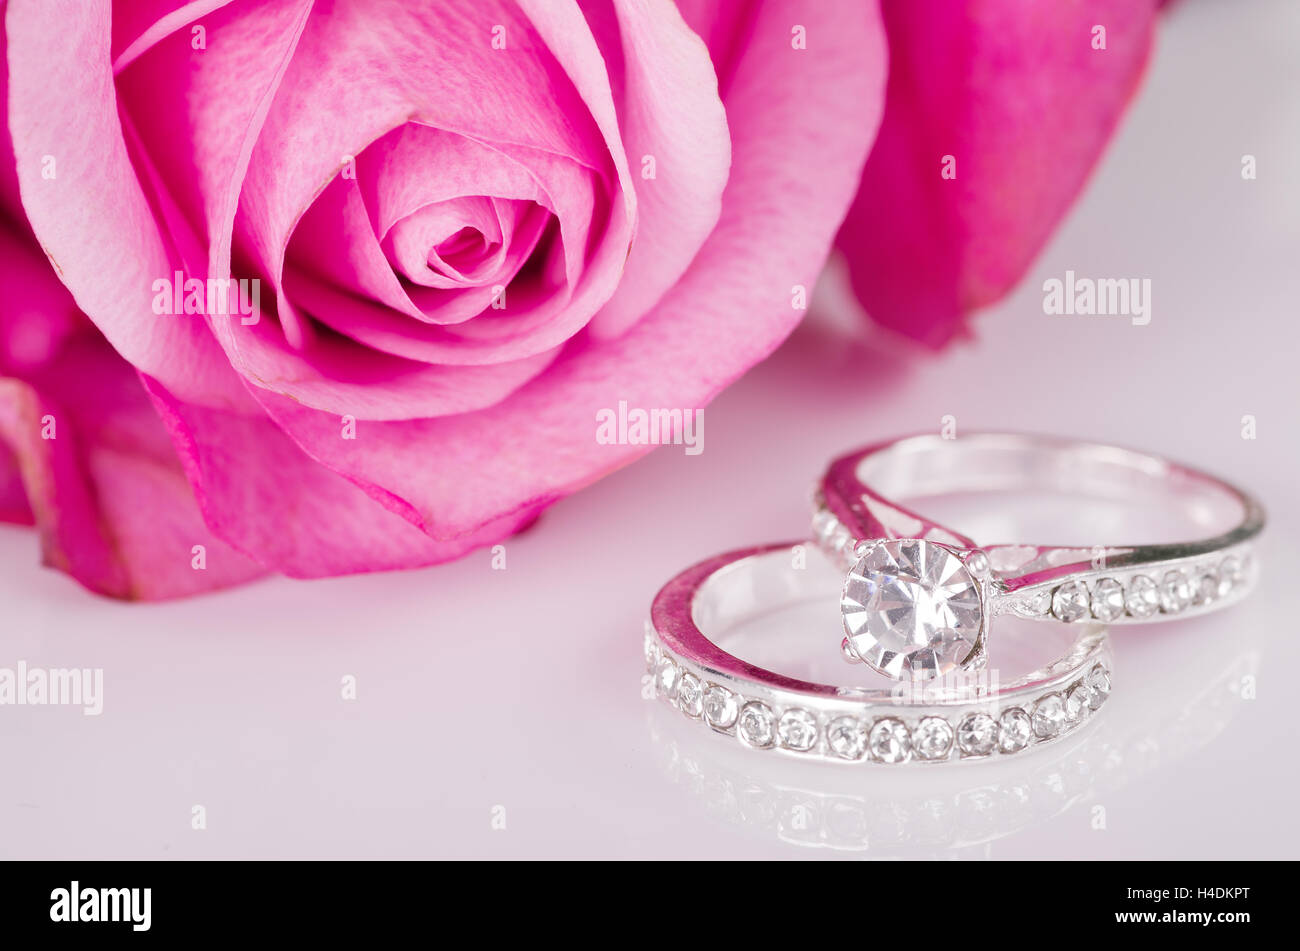 Rich In Jewellery Stock Photos & Rich In Jewellery Stock Images - Alamy